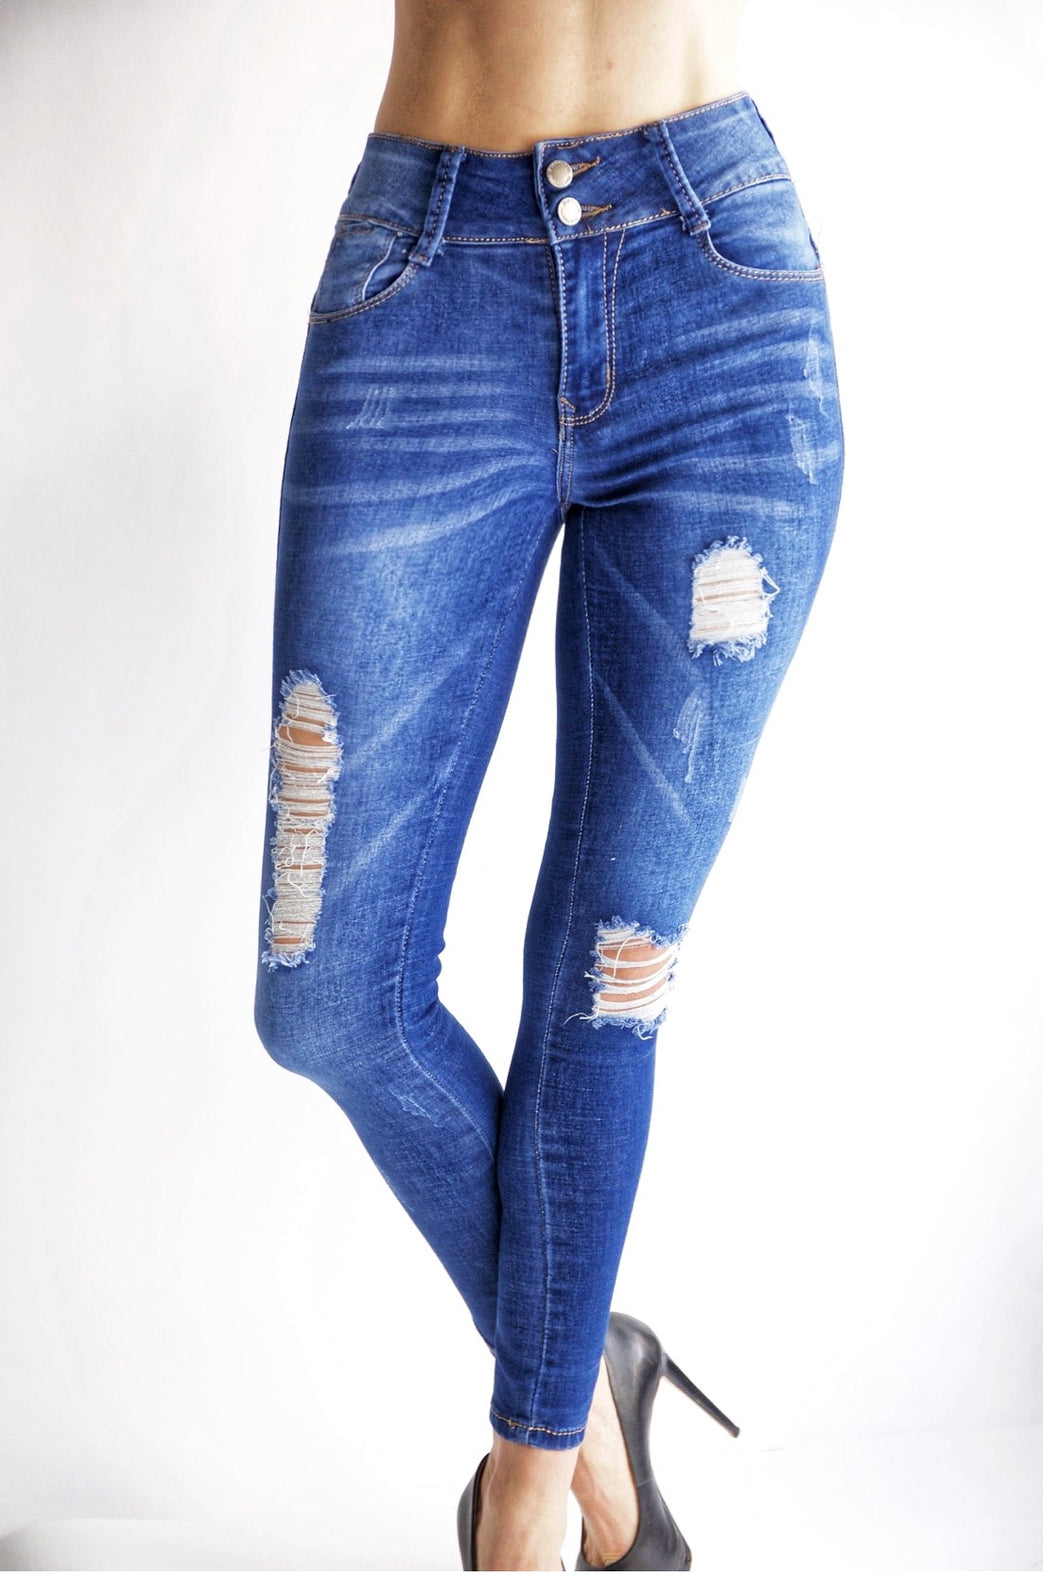 Tiffany New! Super High Rise Distressed Cloud Ocean Blue Tushy Jeans